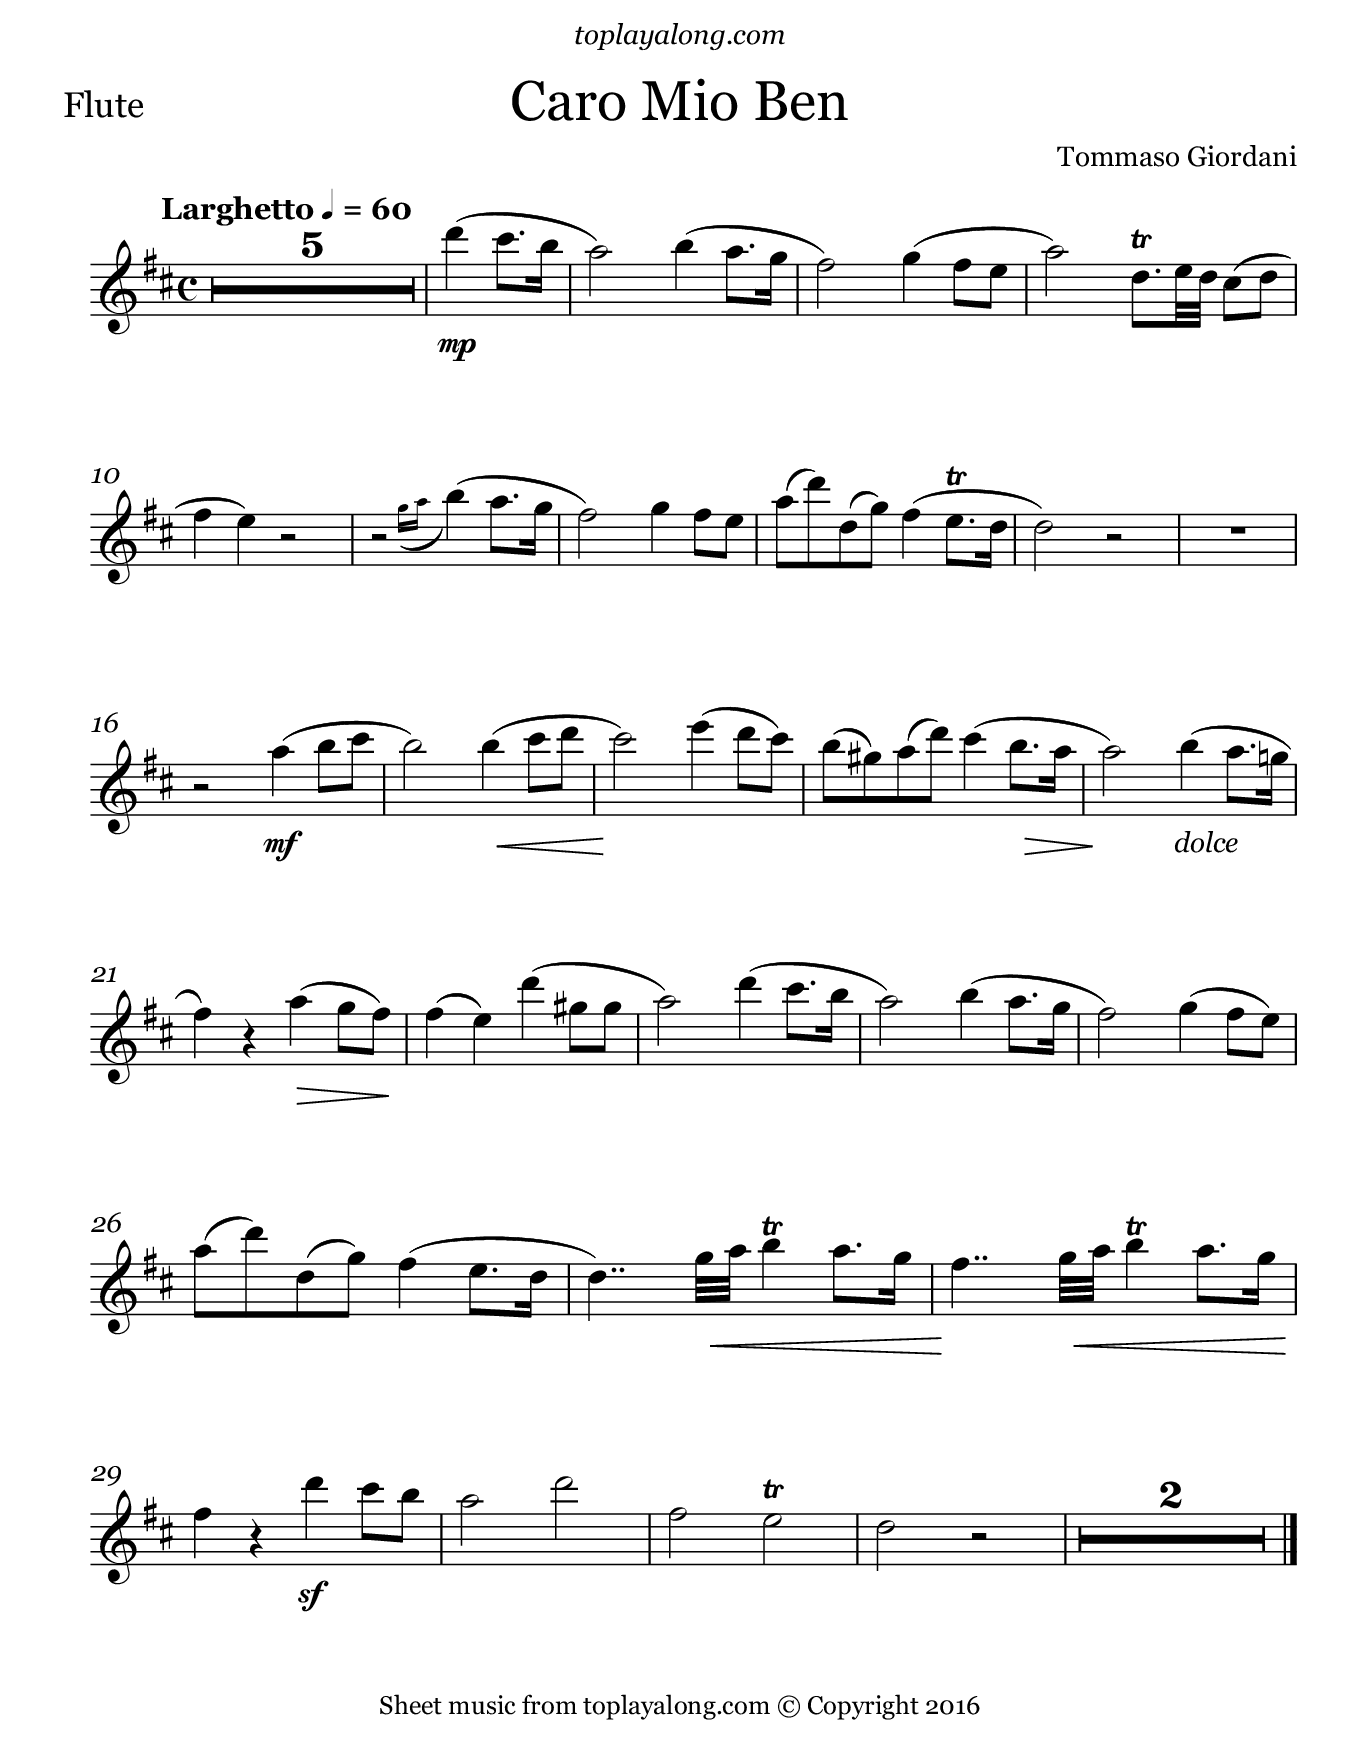 Caro mio ben by Giordani. Sheet music for Flute, page 1.